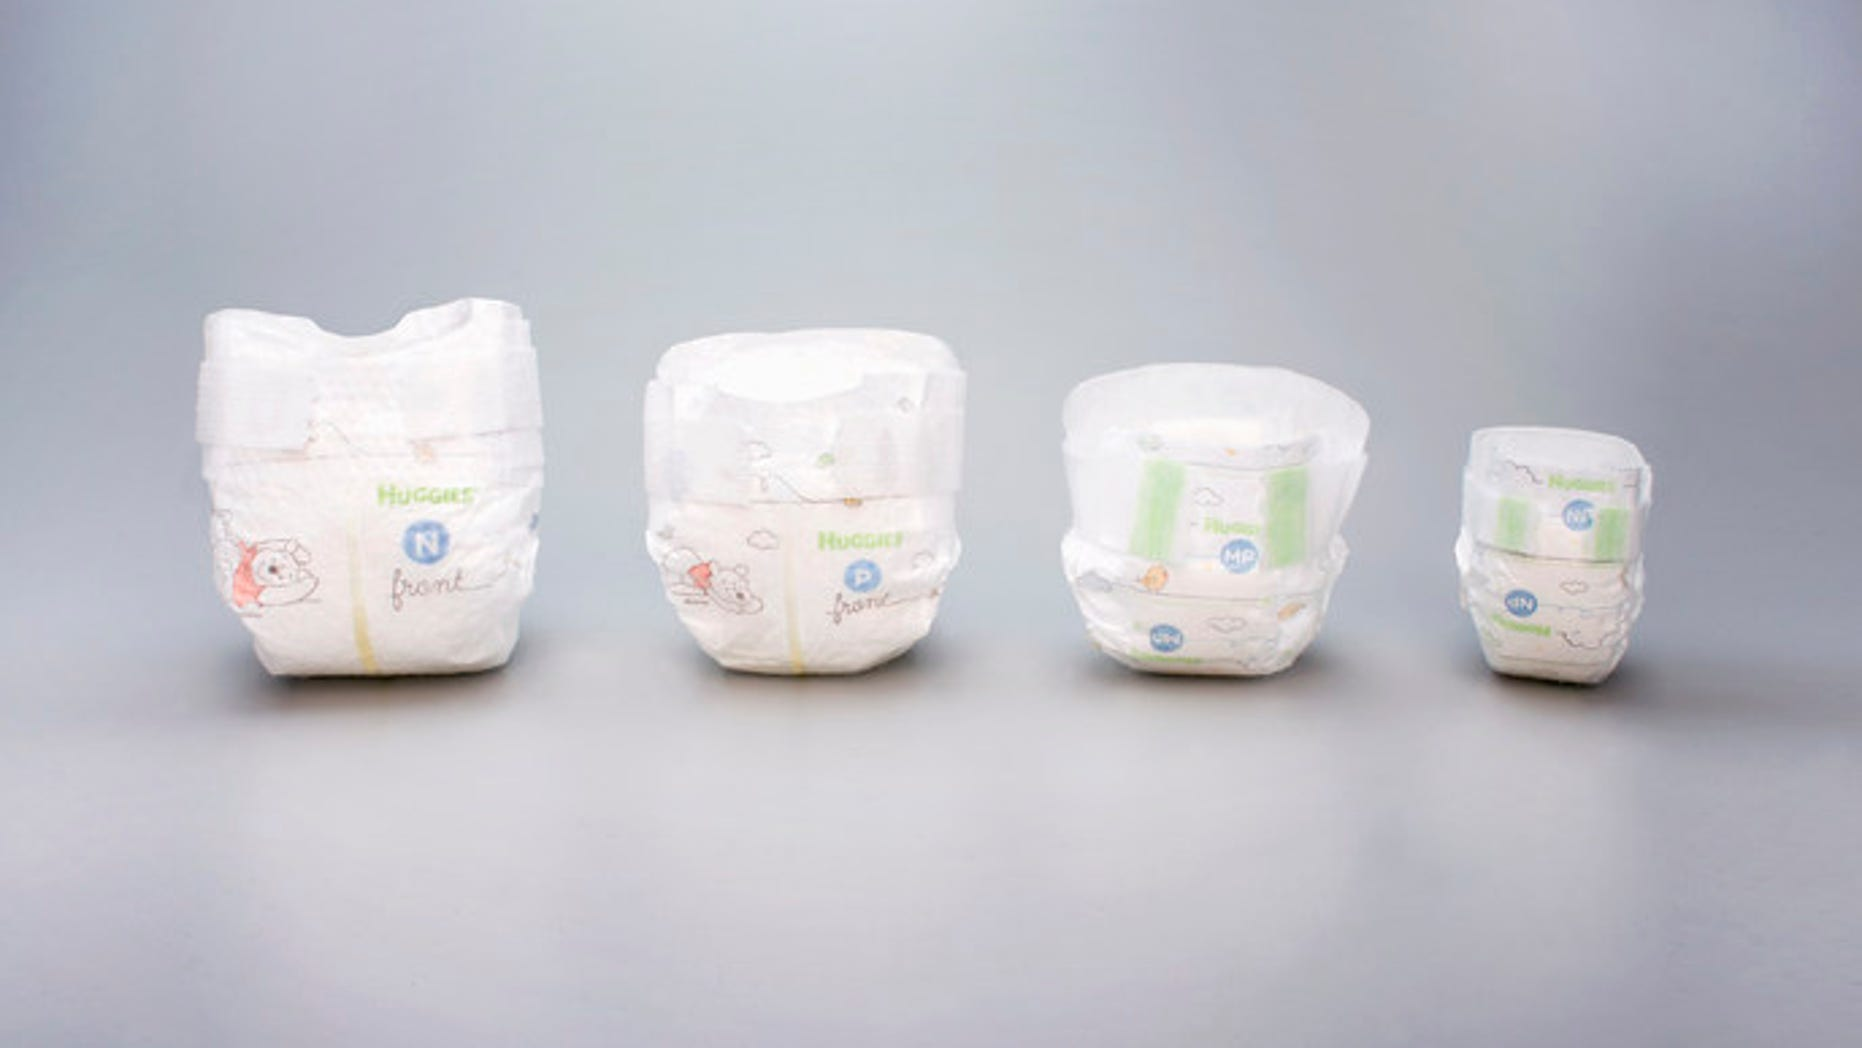 The diapers debuted Feb. 1